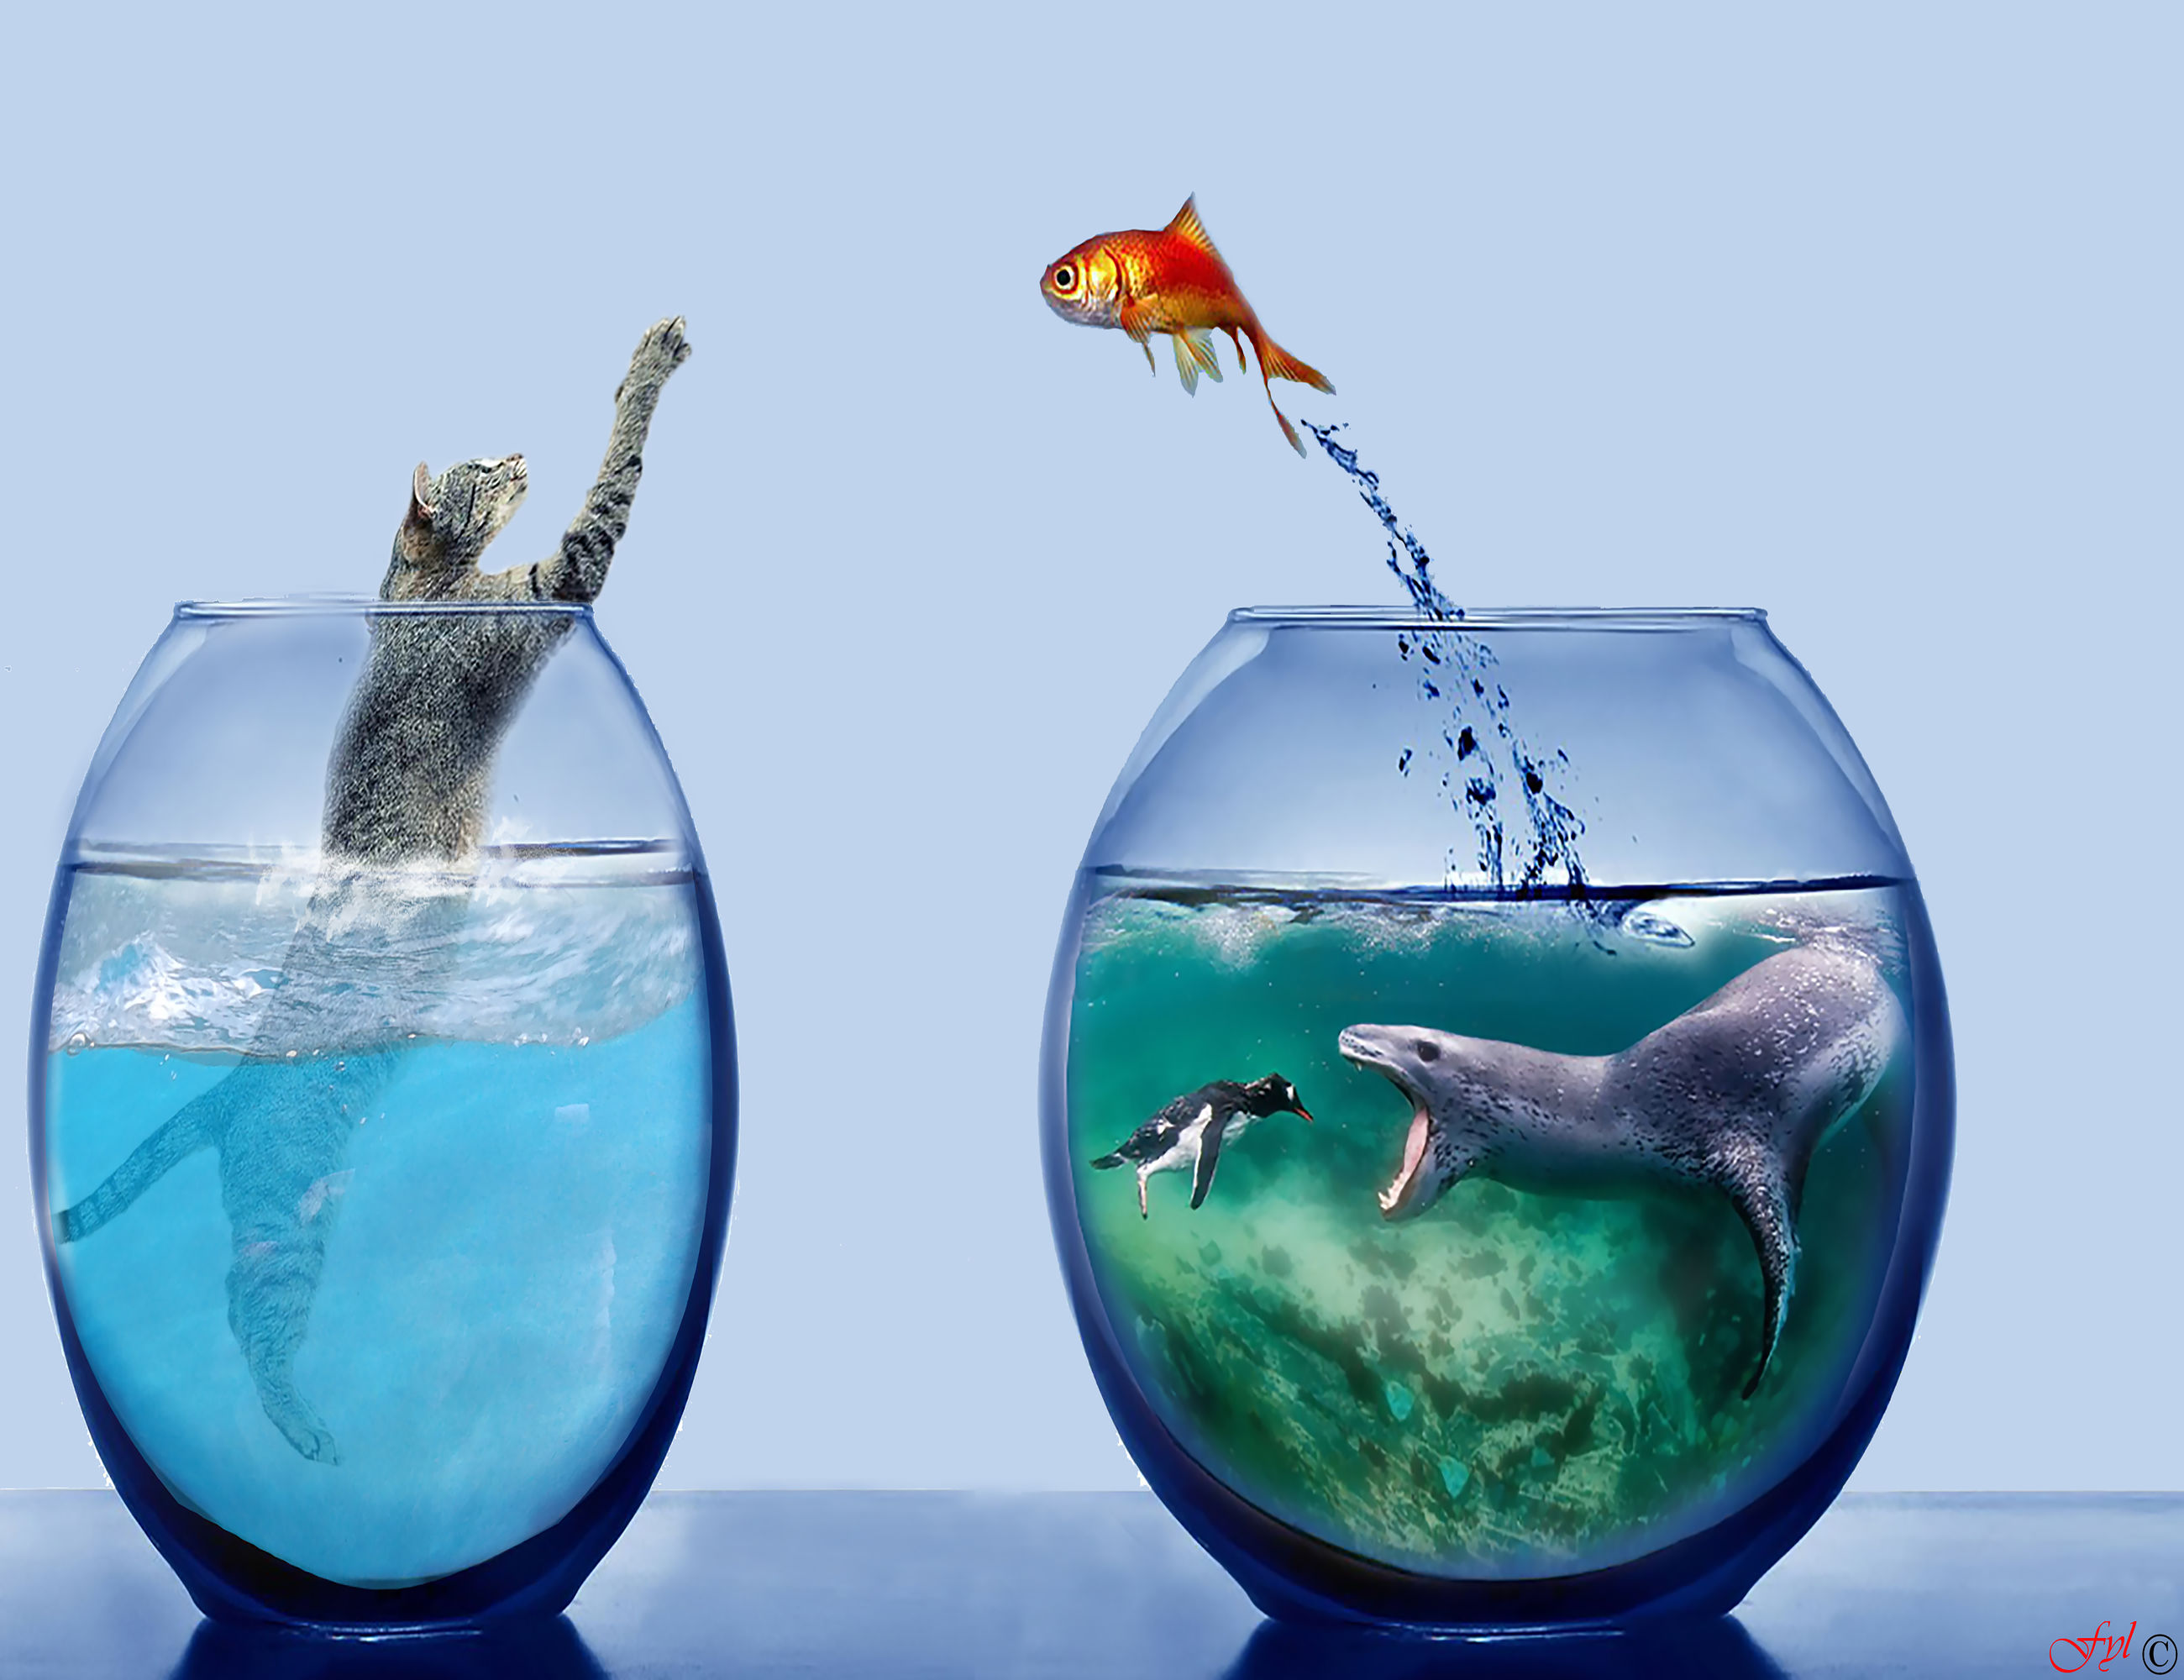 water, sea, transparent, group of animals, animal themes, studio shot, animal, fishbowl, nature, blue, fish, no people, animal wildlife, goldfish, two animals, vertebrate, animals in the wild, indoors, glass - material, marine, turquoise colored, blue background